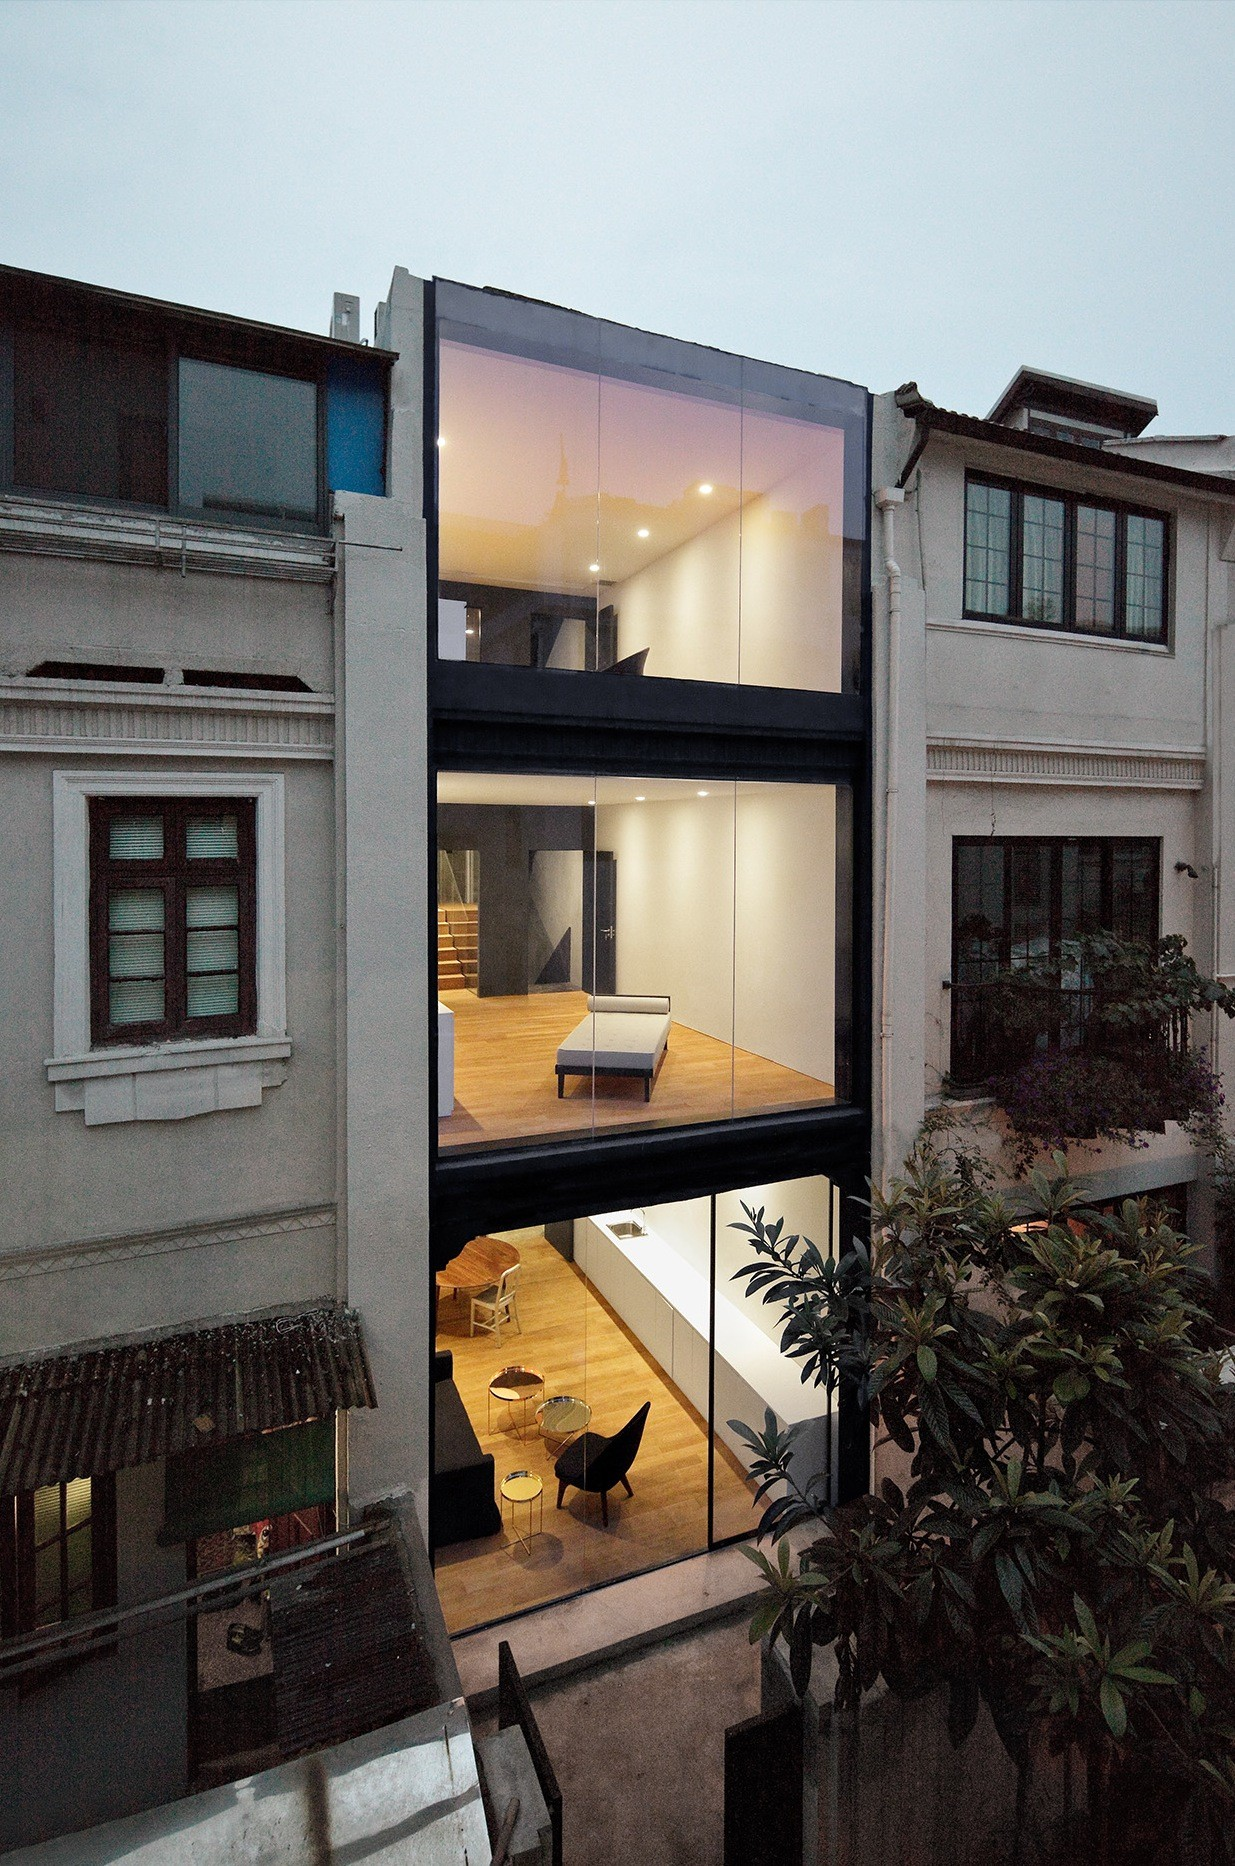 Gallery of rethinking the split house neri hu design R house architecture research office